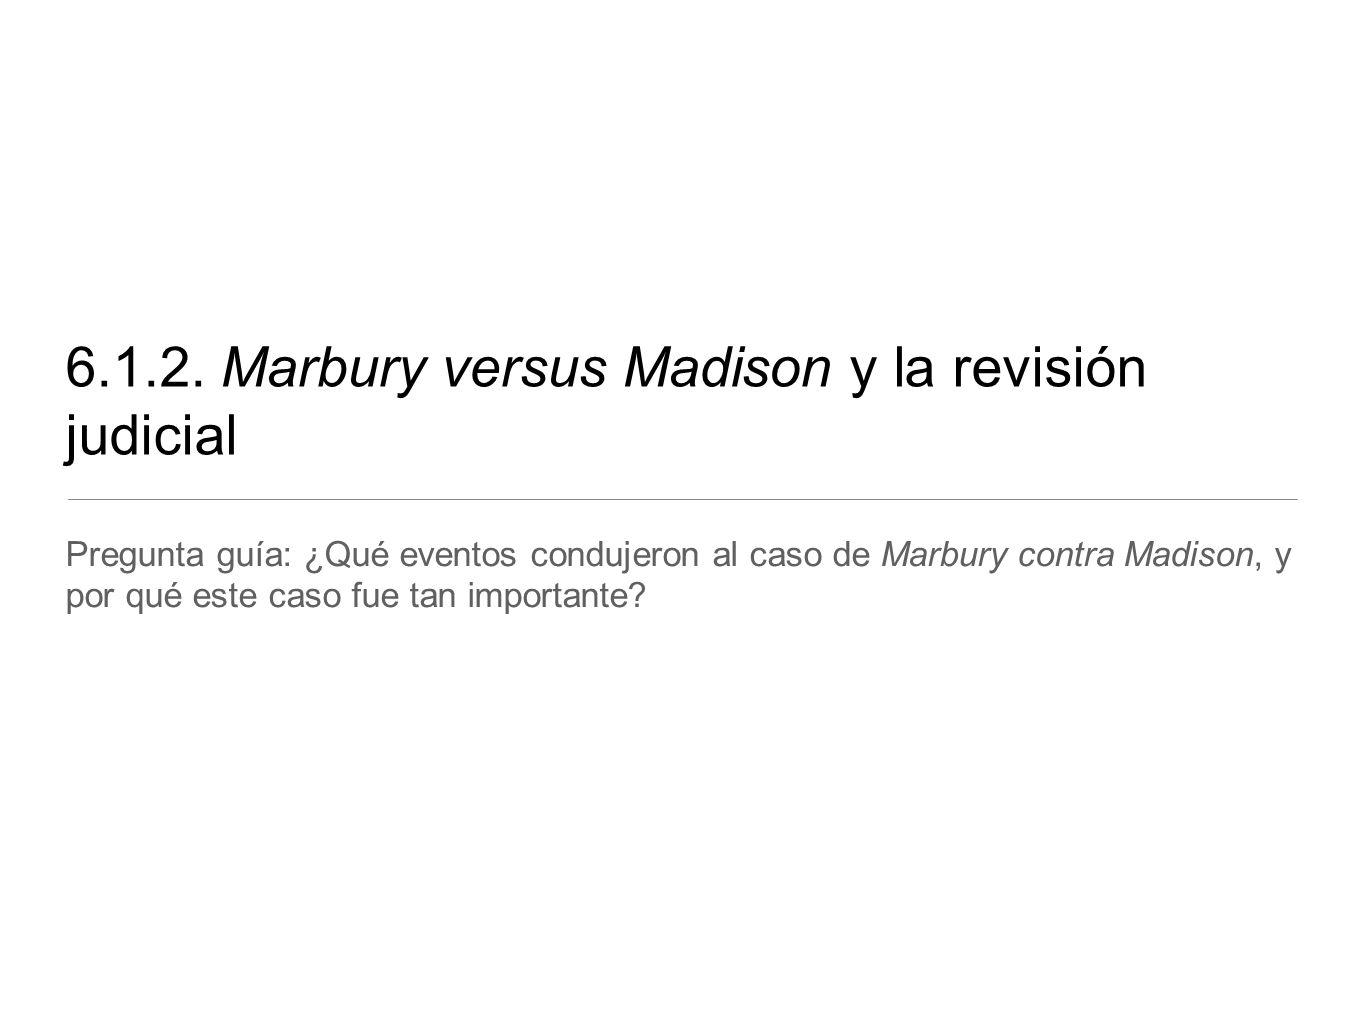 Marbury versus Madison y la revisión judicial